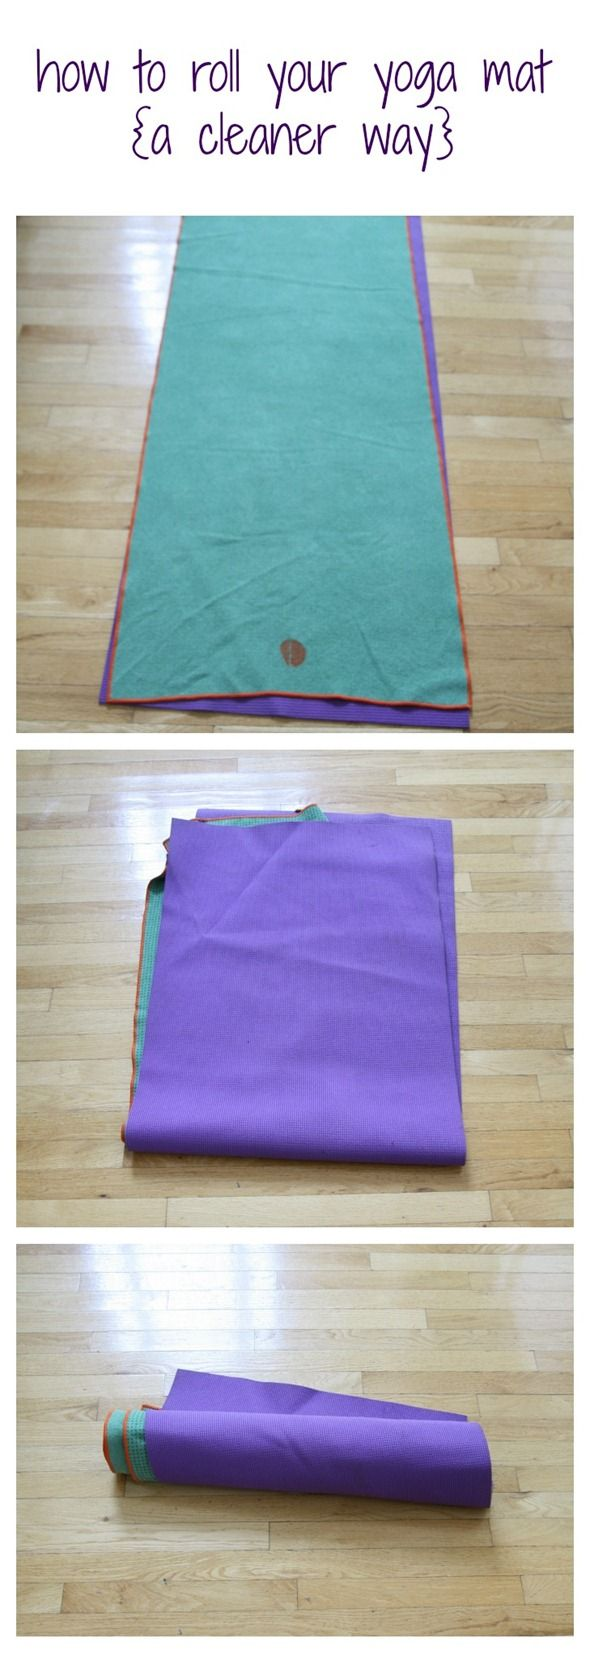 You'll Never Roll Your Yoga Mat the Same Way Again